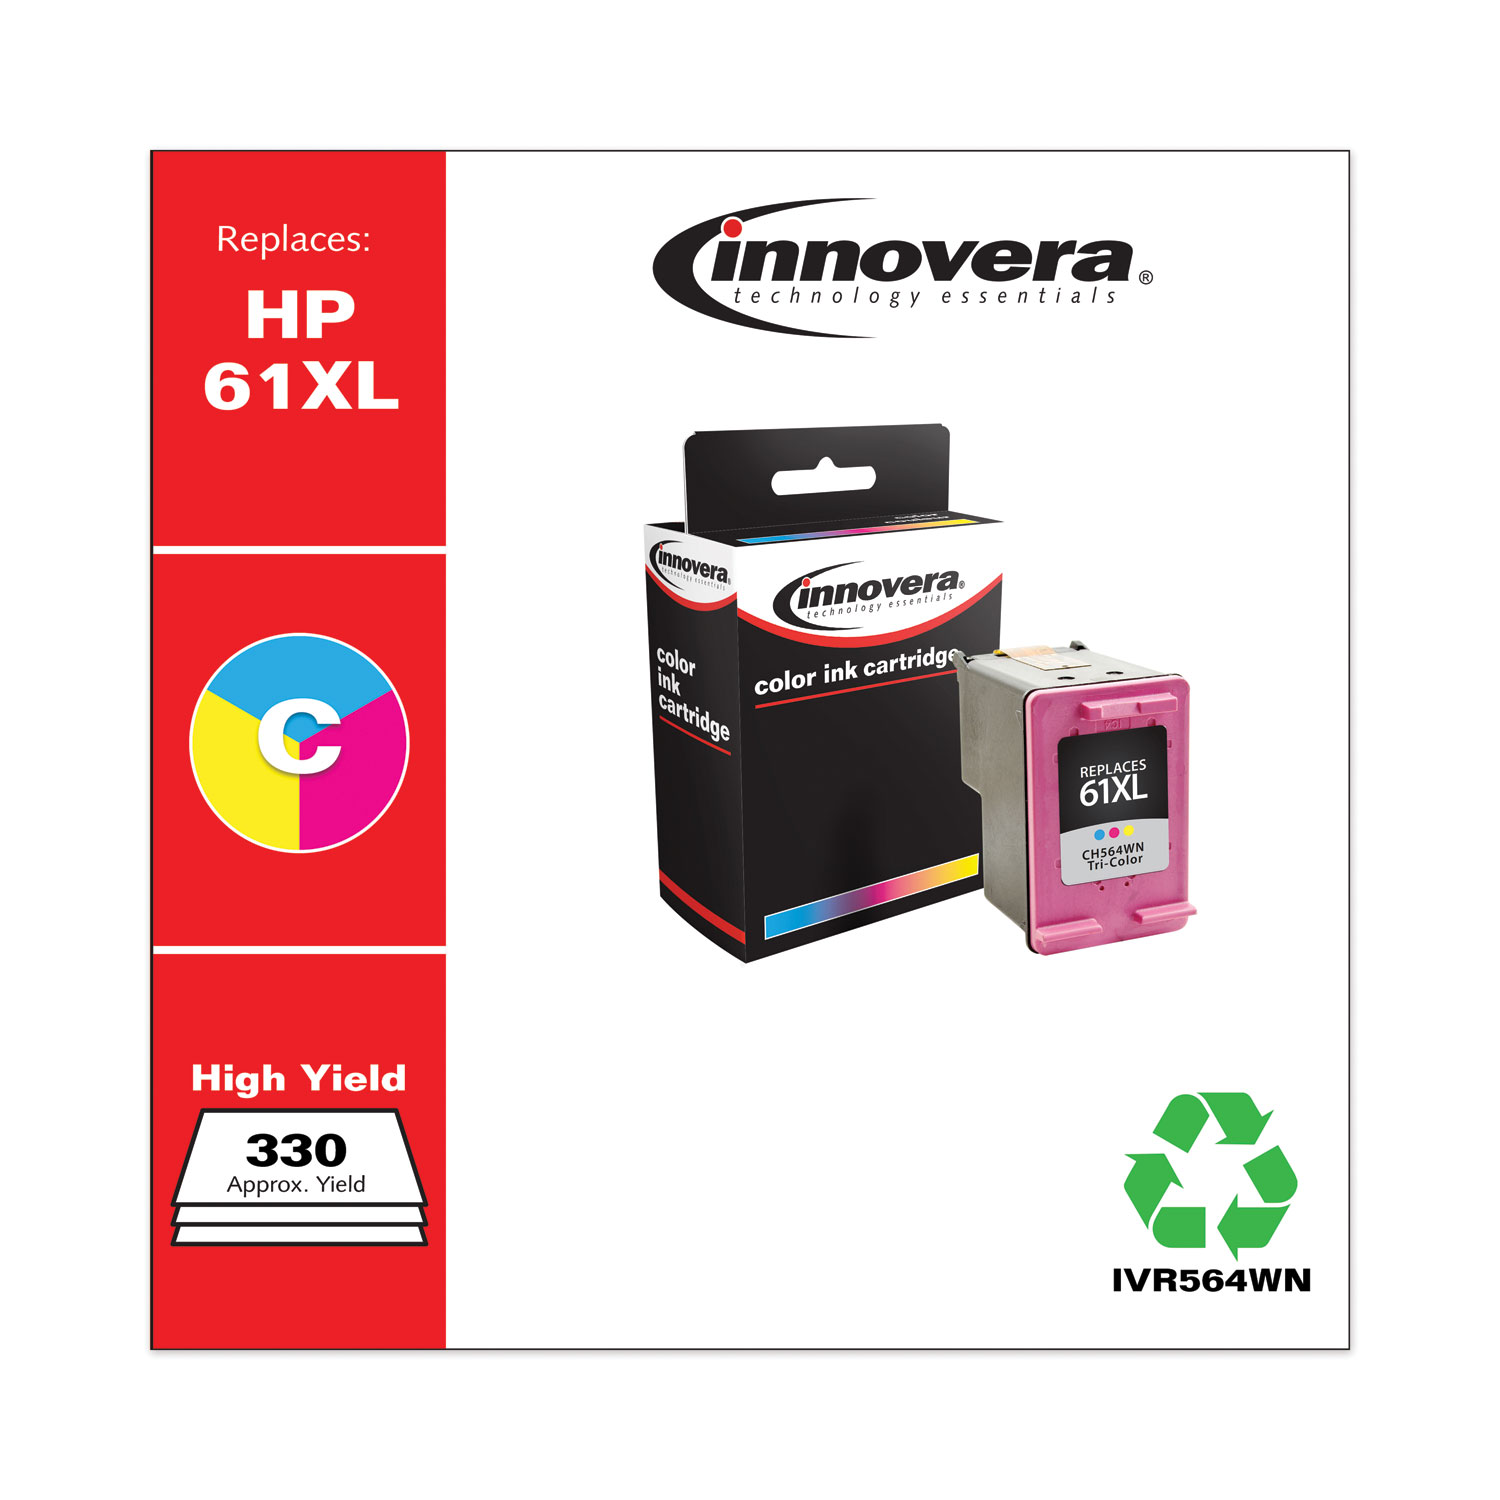 Remanufactured Tri-Color High-Yield Ink, Replacement for HP 61XL (CH564WN), 330 Page-Yield IVR564WN